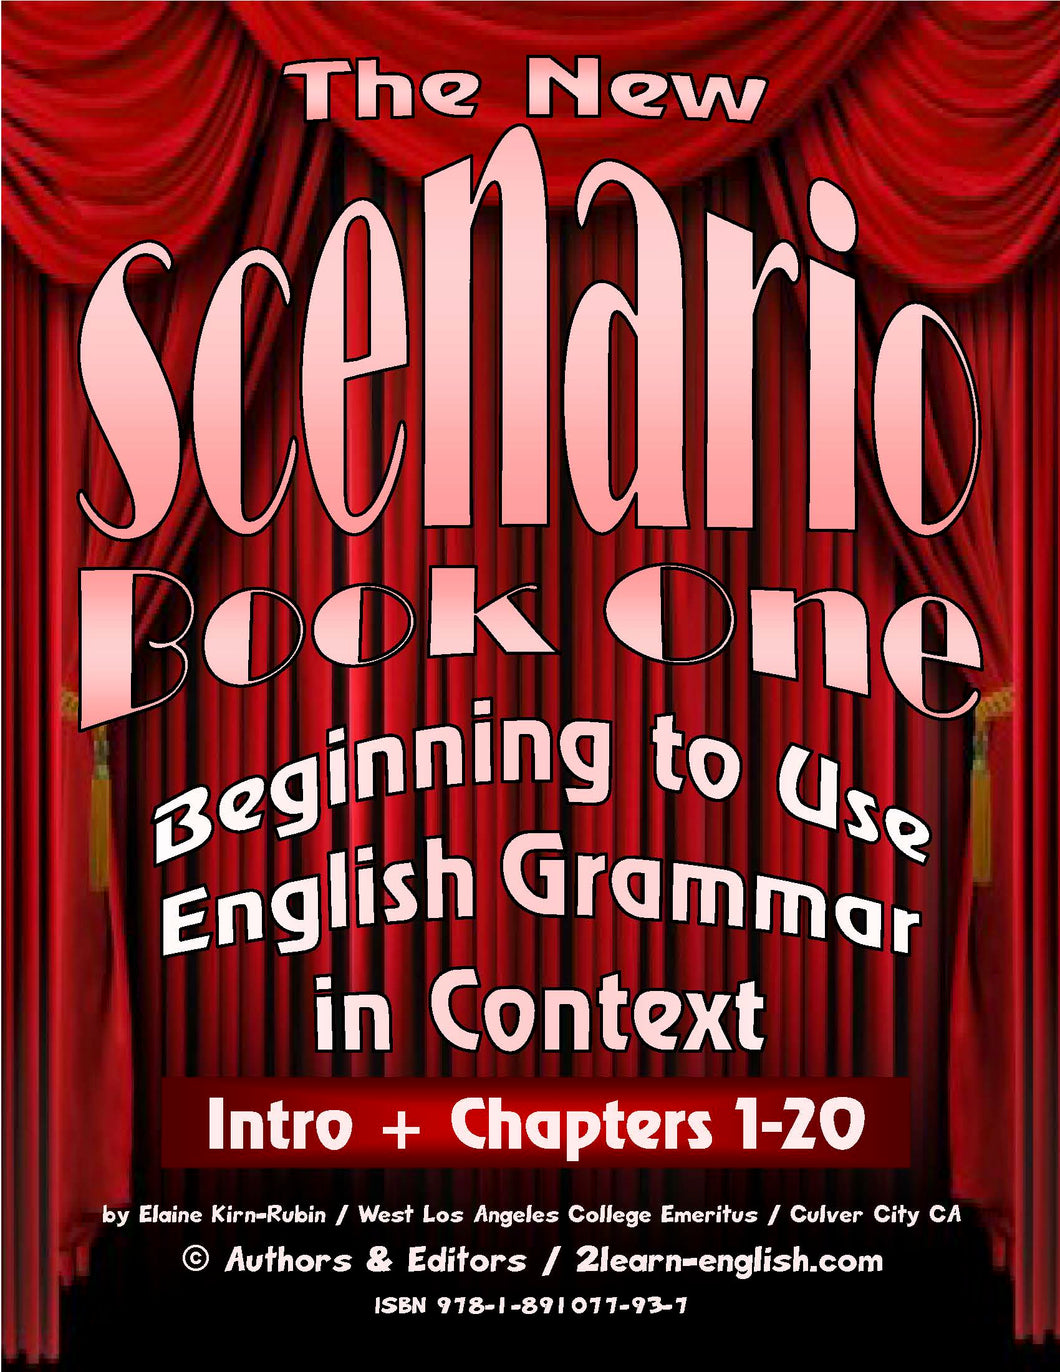 D. Scenario Book One: Beginning to Use English Grammar in Context